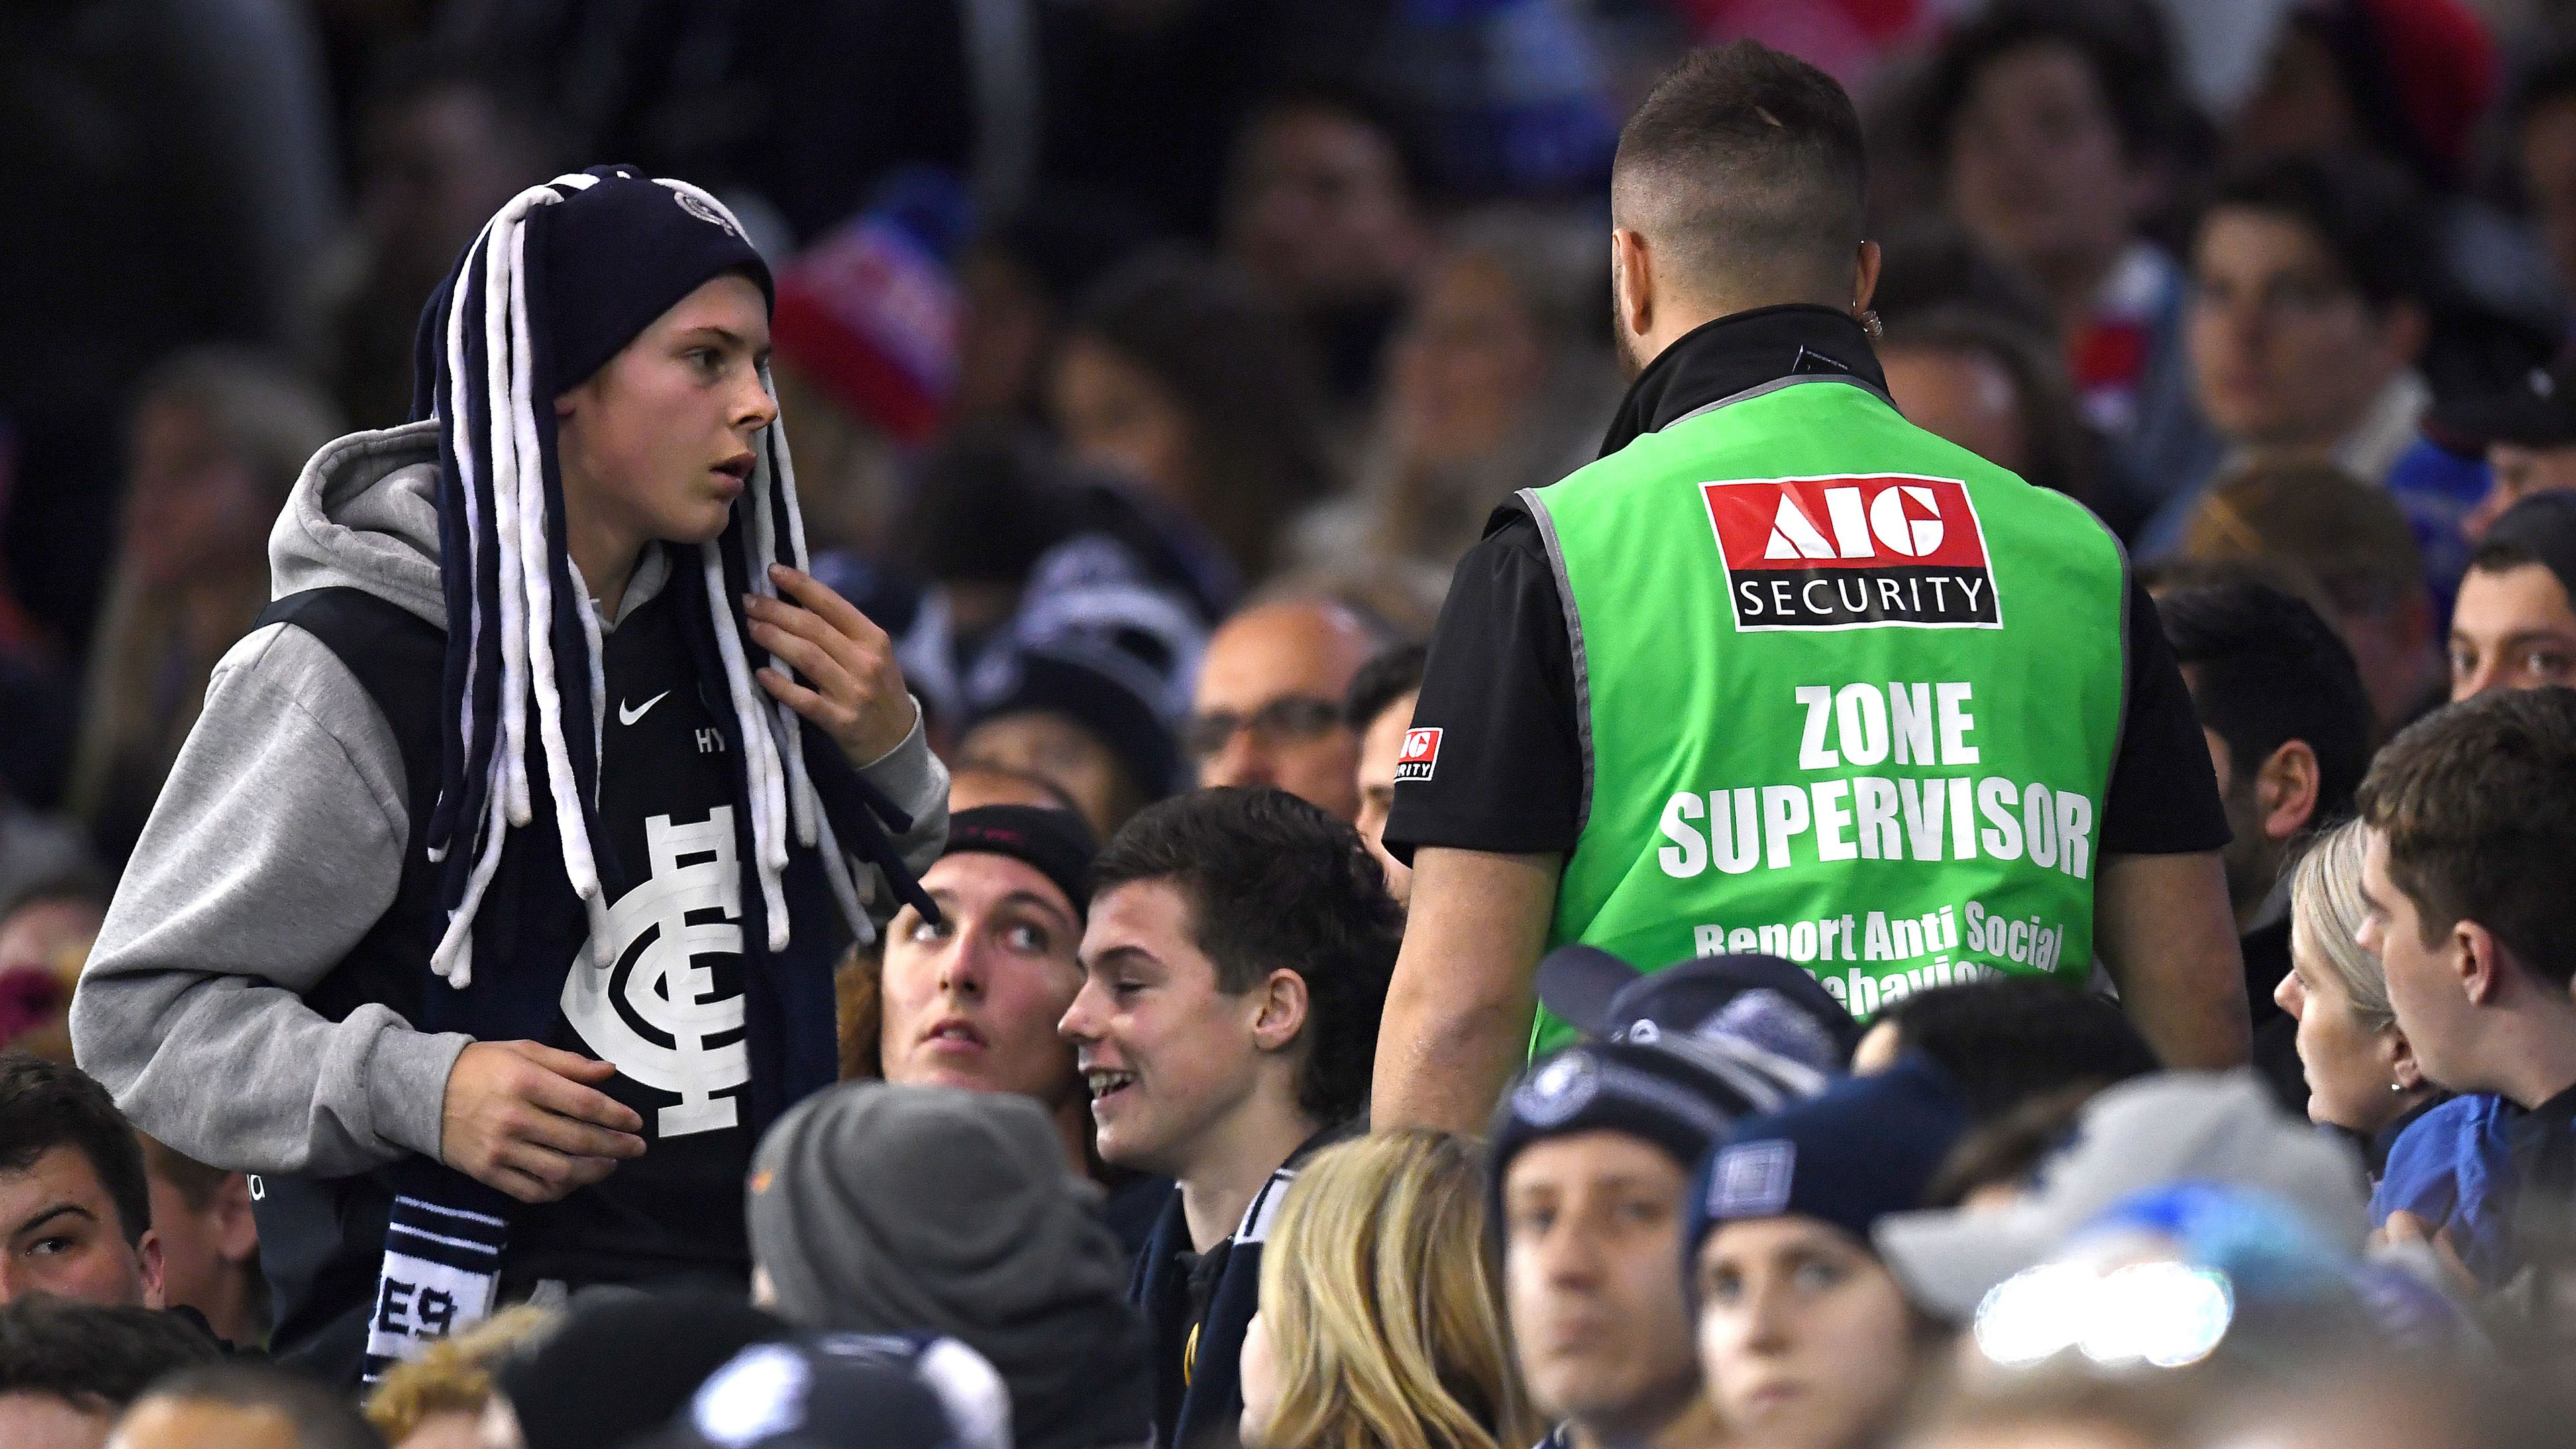 Peter FitzSimons calls out AFL's biggest mistake in crowd control saga